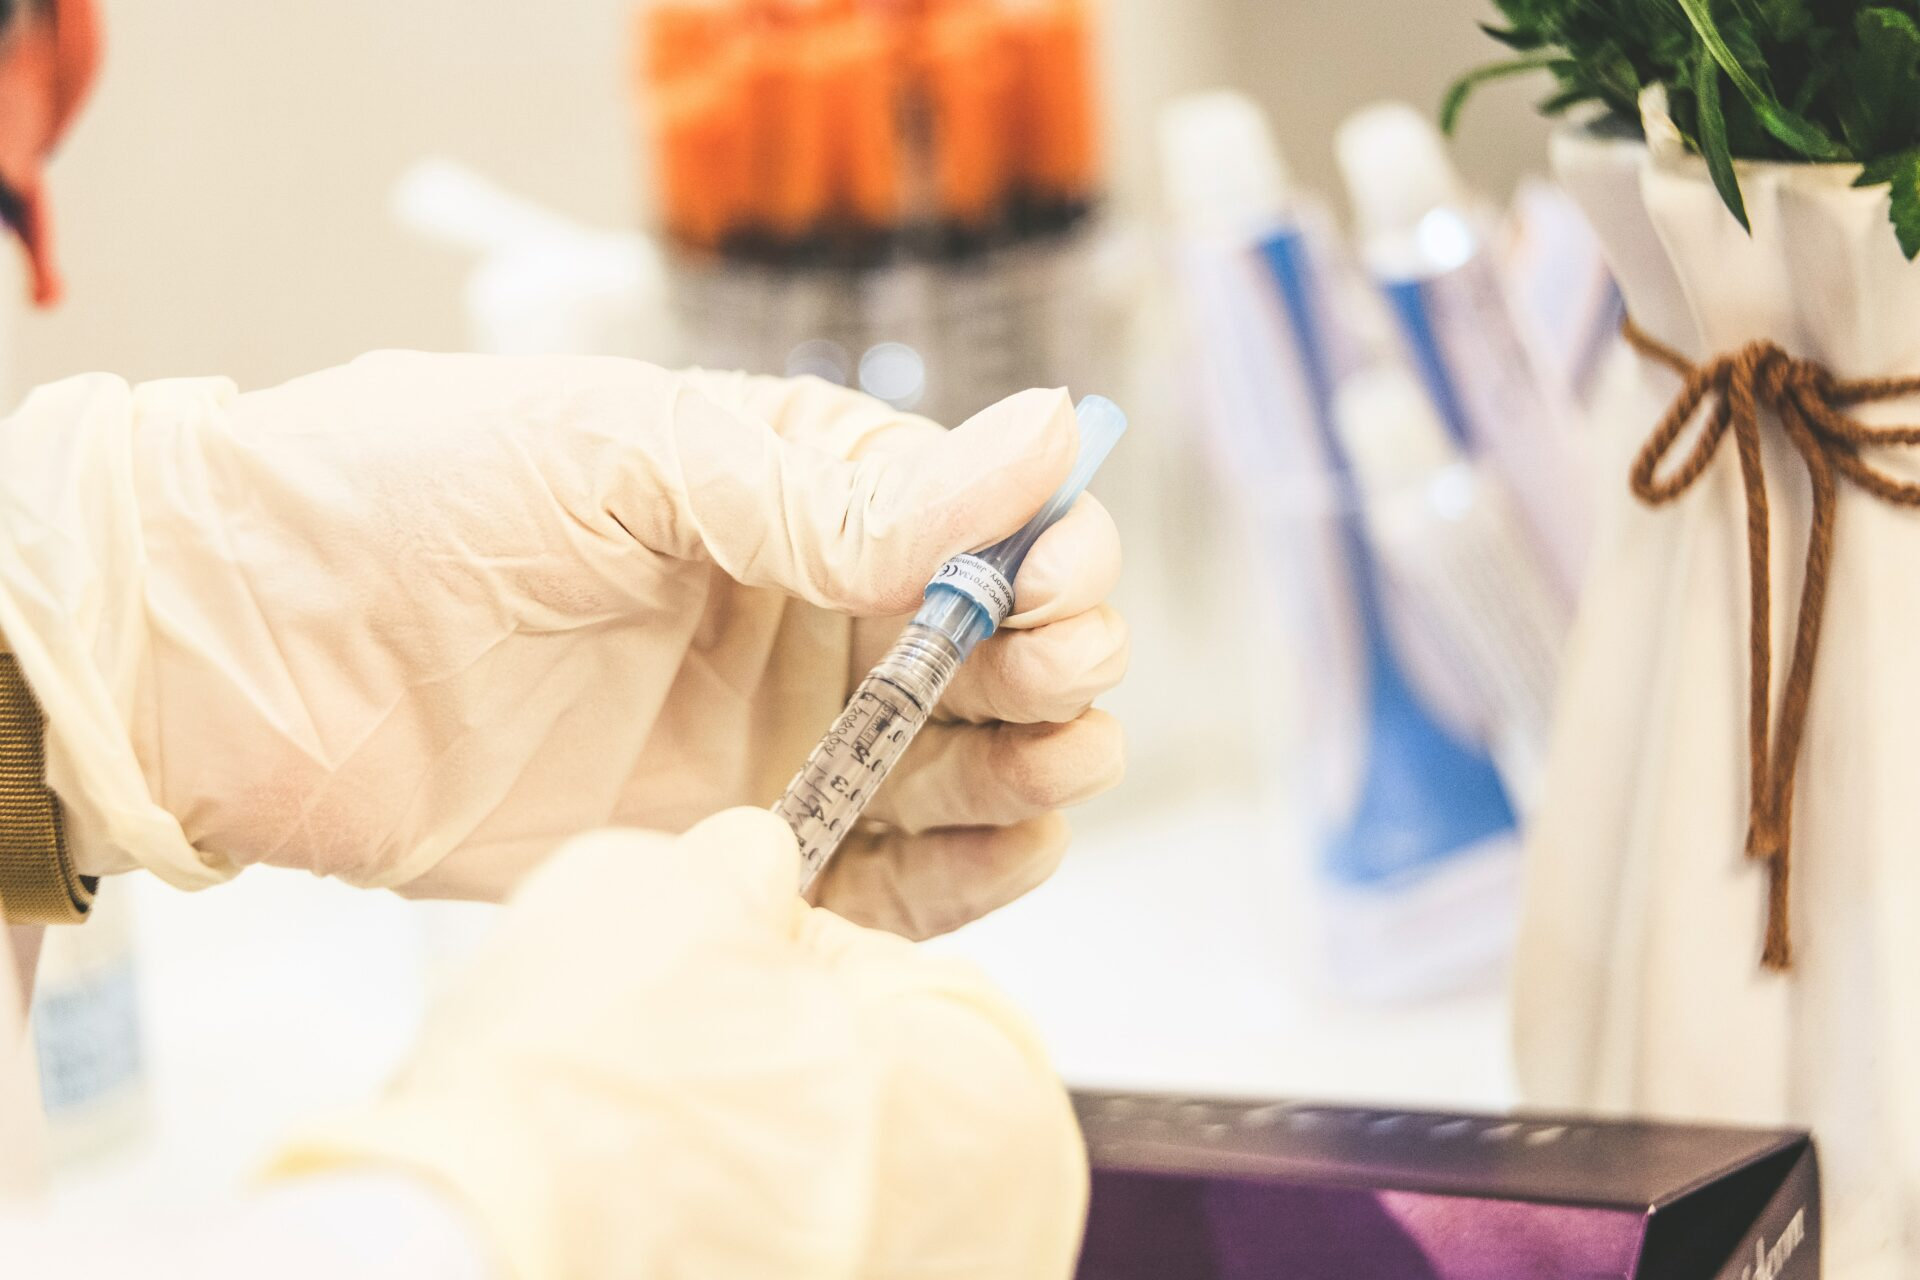 Vaccine Proponents and Opponents Are Vectors of Misinformation Online